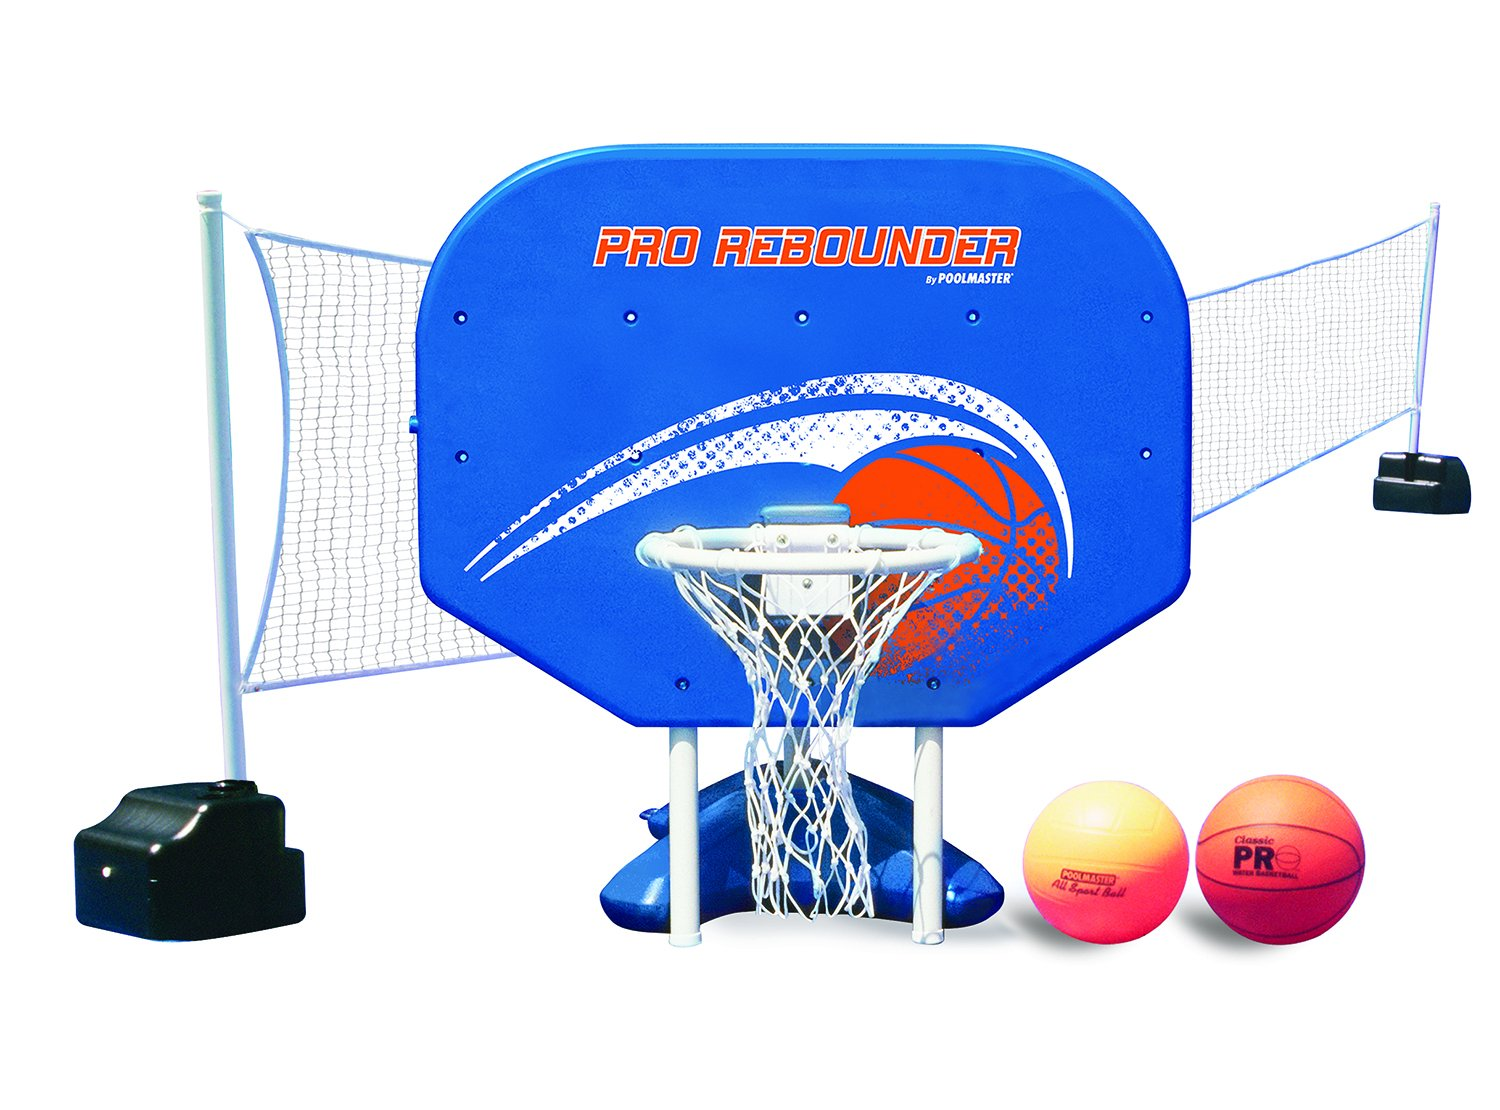 Poolmaster 72775 Pro Rebounder Poolside Basketball/Volleyball Game Combo